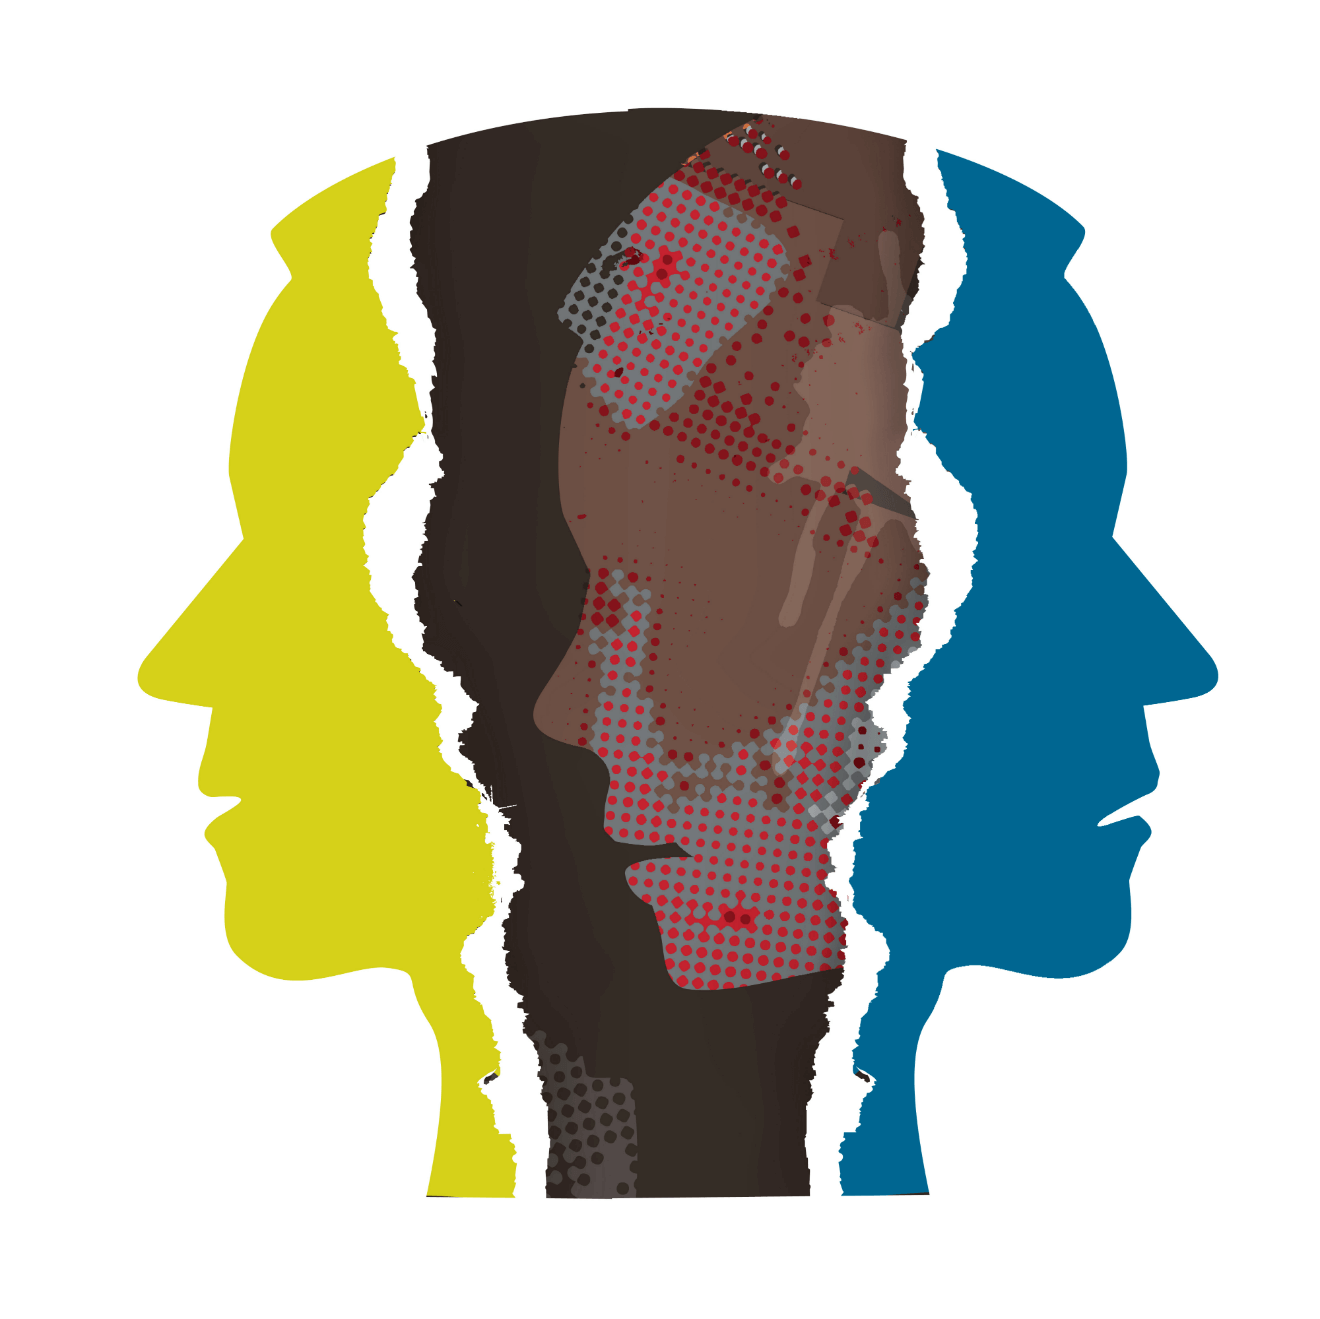 male heads illustration yellow blue red